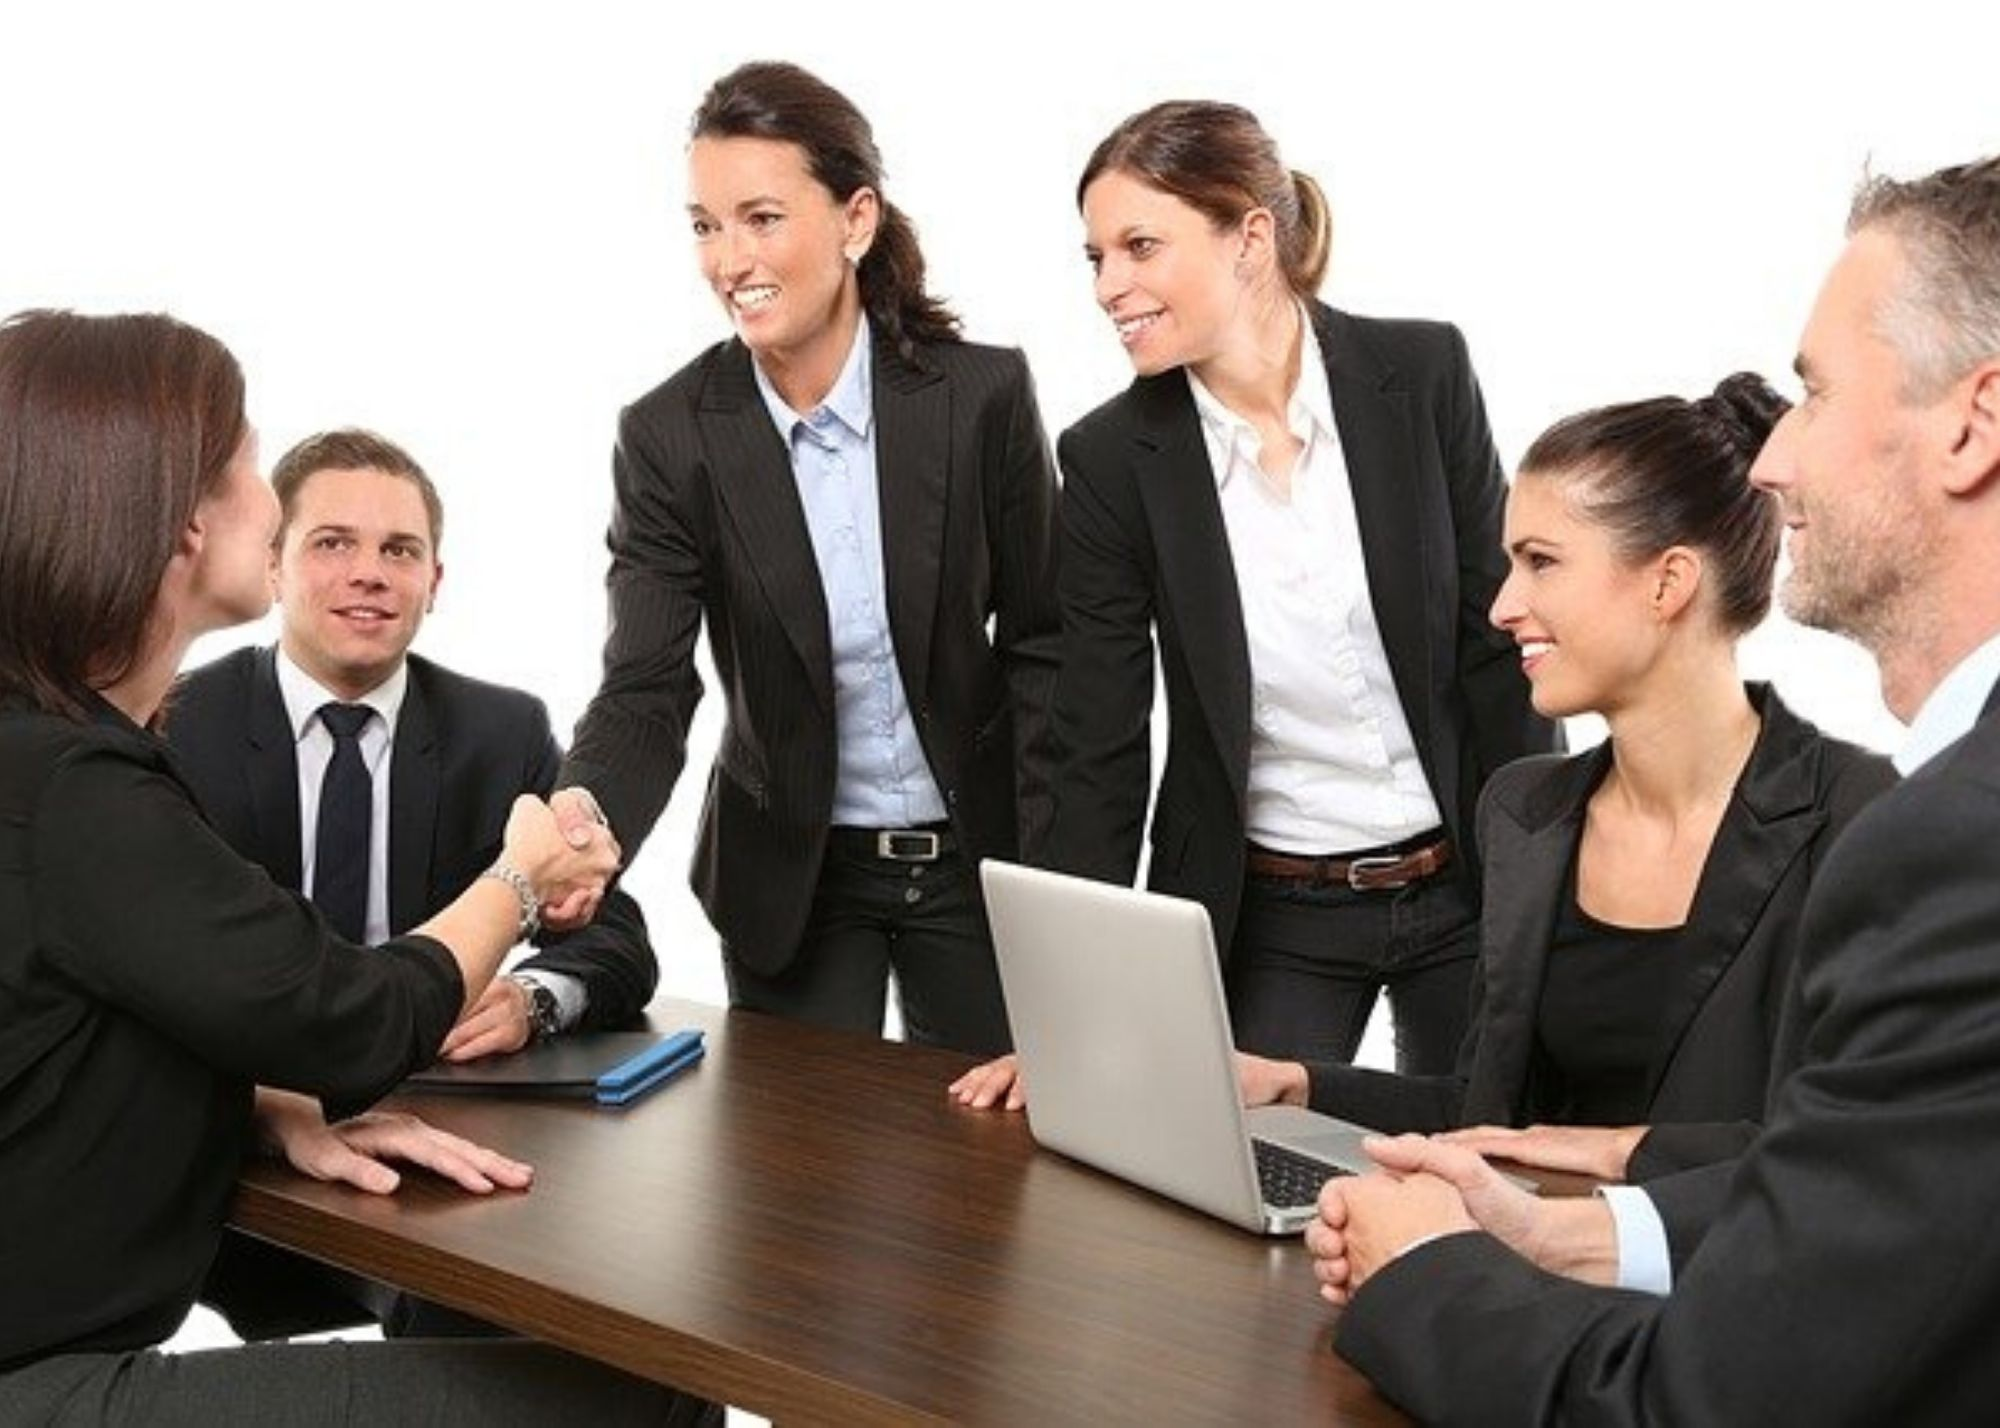 5 Ways To Make A Great First Impression - Employees Shaking Hands